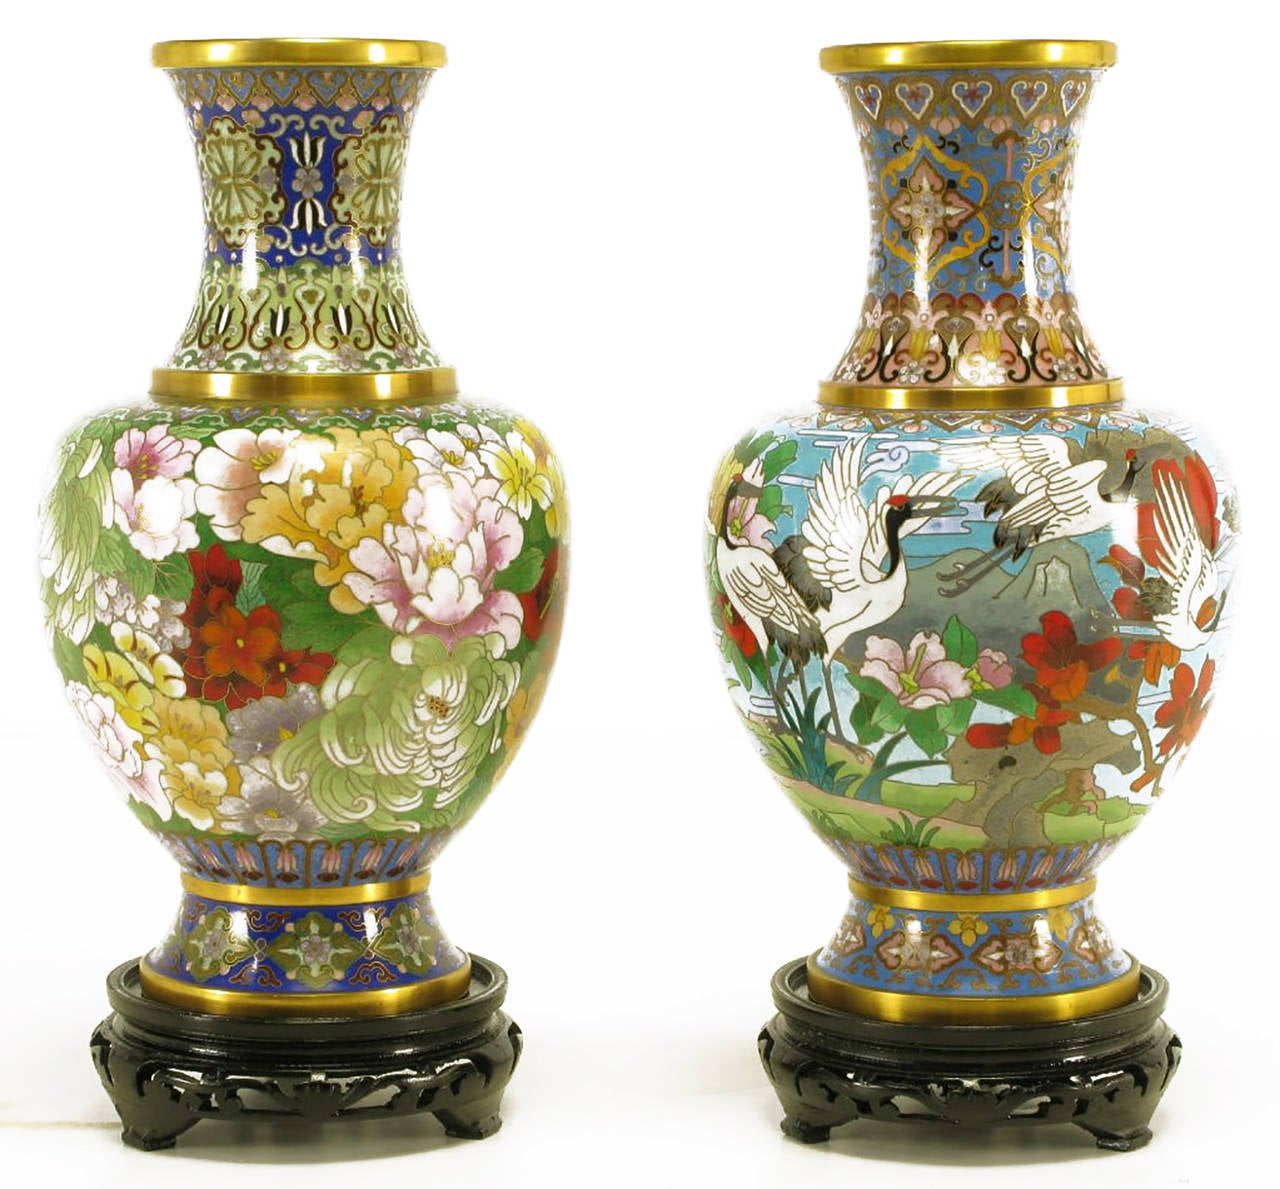 Pair of colorful Chinese cloisonné vases with green and blues being the primary colors. Both have floral background designs. One vase features chrysanthemums and the other red headed herons. Made by Jingfa, award winning manufacturer of fine